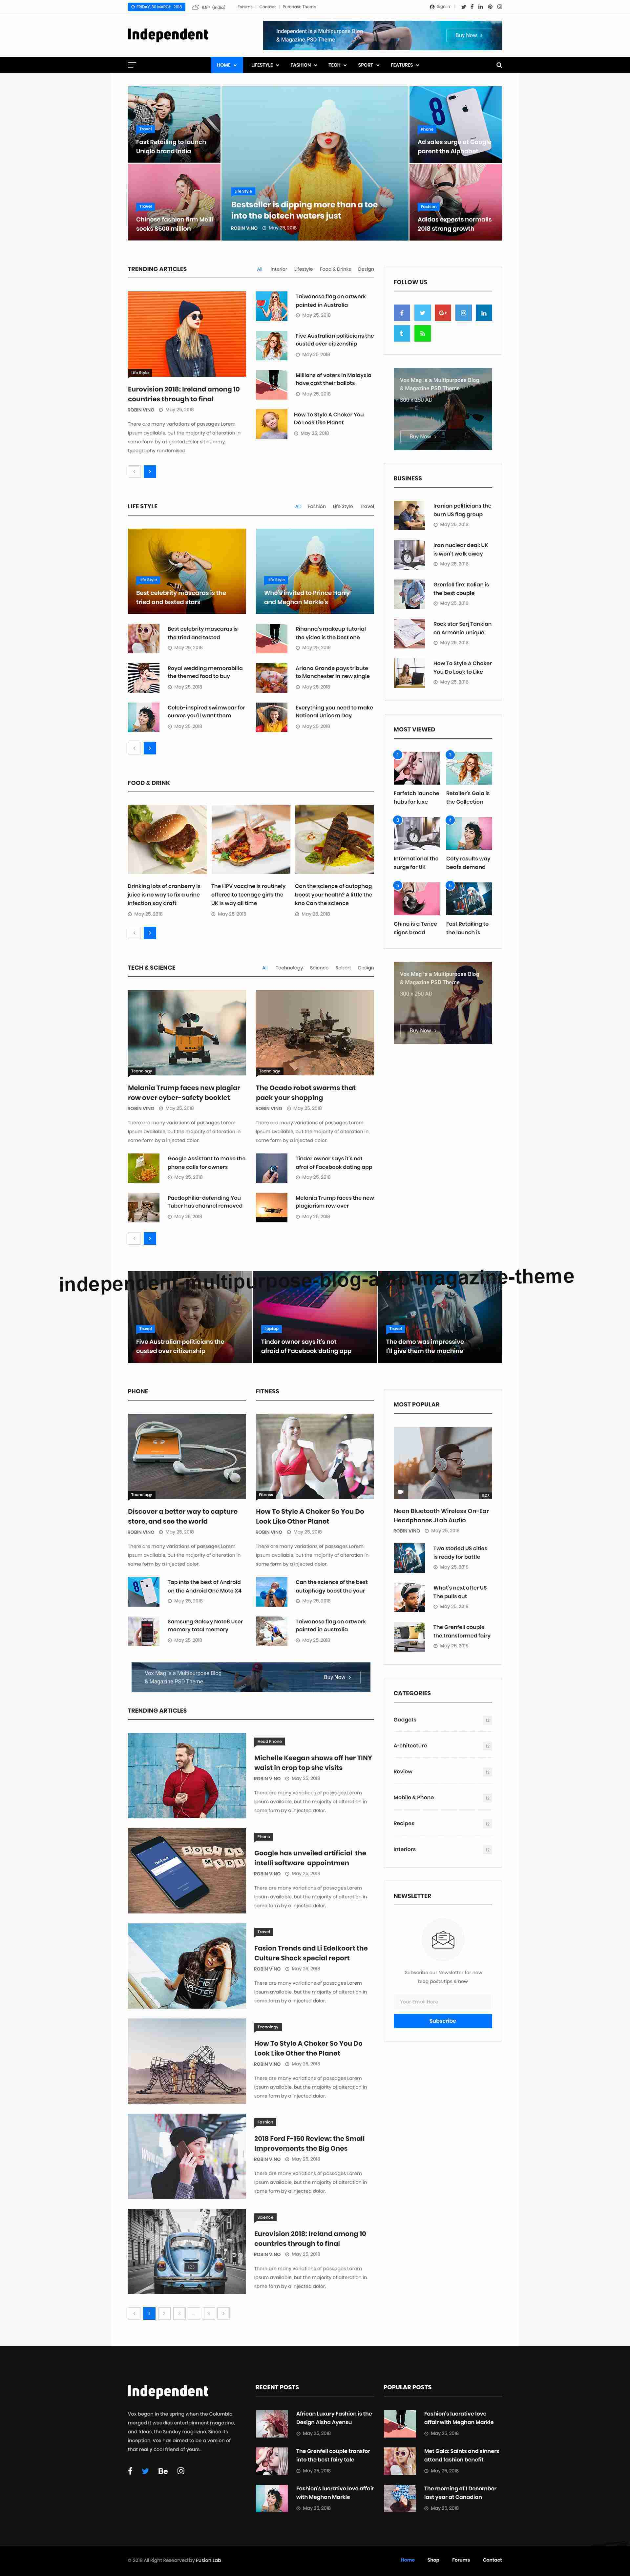 https://images.besthemes.com/images/h1_independent-multipurpose-blog-amp-magazine-theme3-_-249989416/Theme-s20s-Preview/02-Default-s20s-Page.jpg